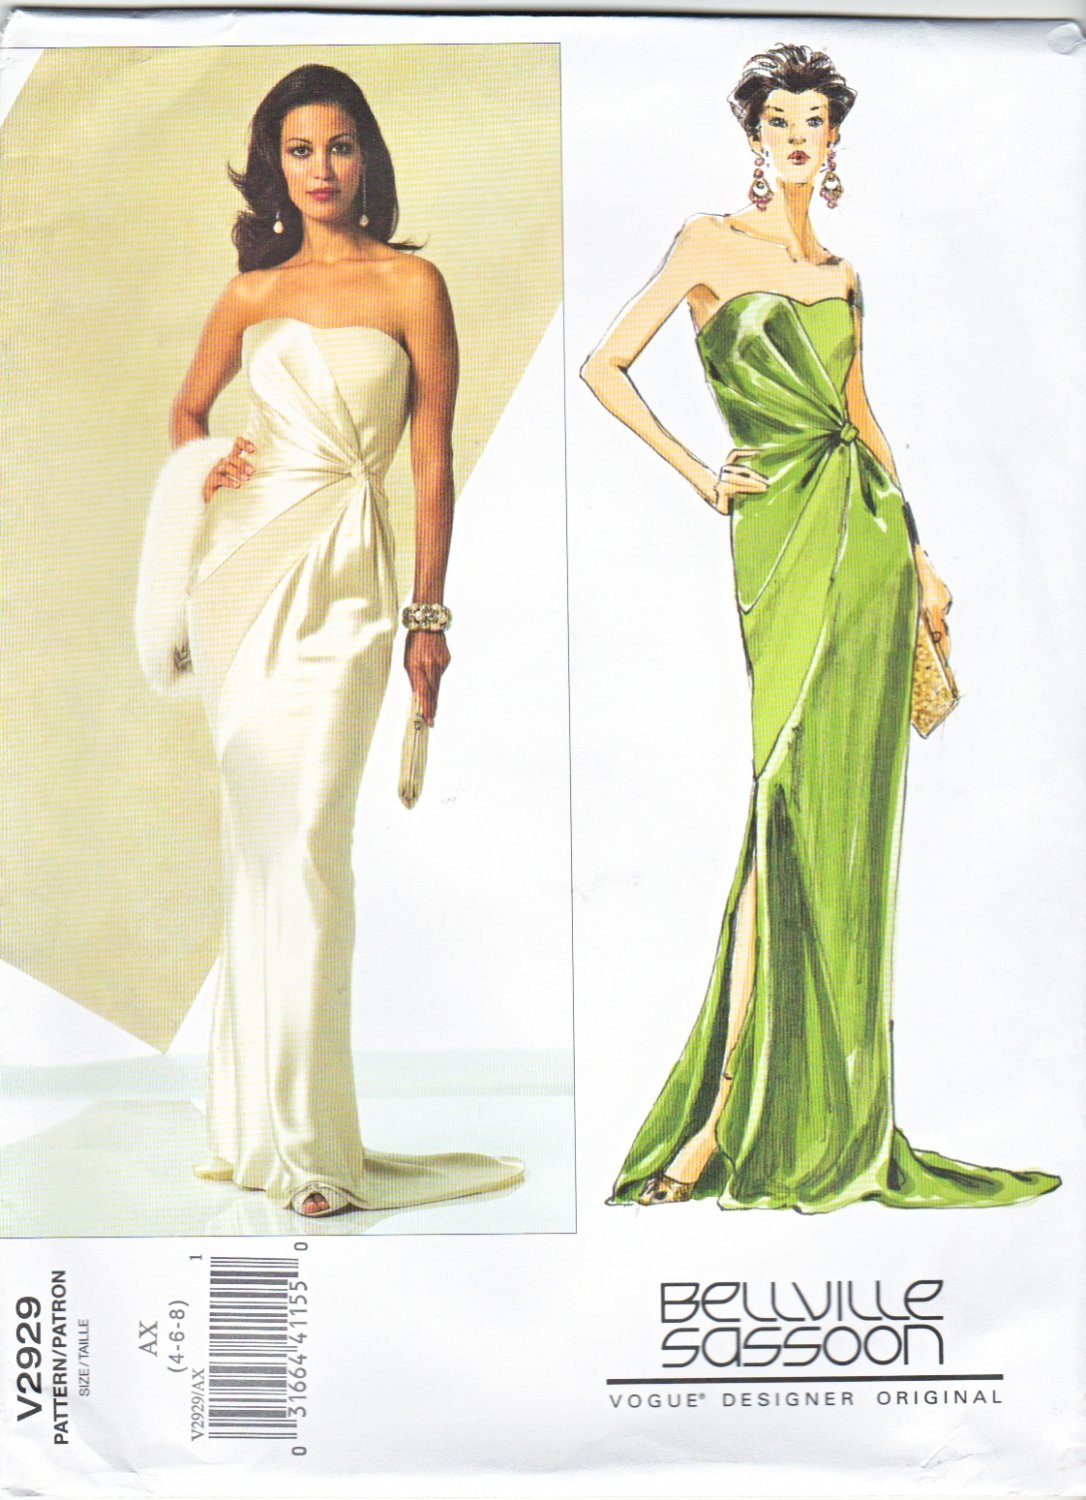 Vogue Sewing Pattern 2929 Misses Size 16 18 20 Bellville